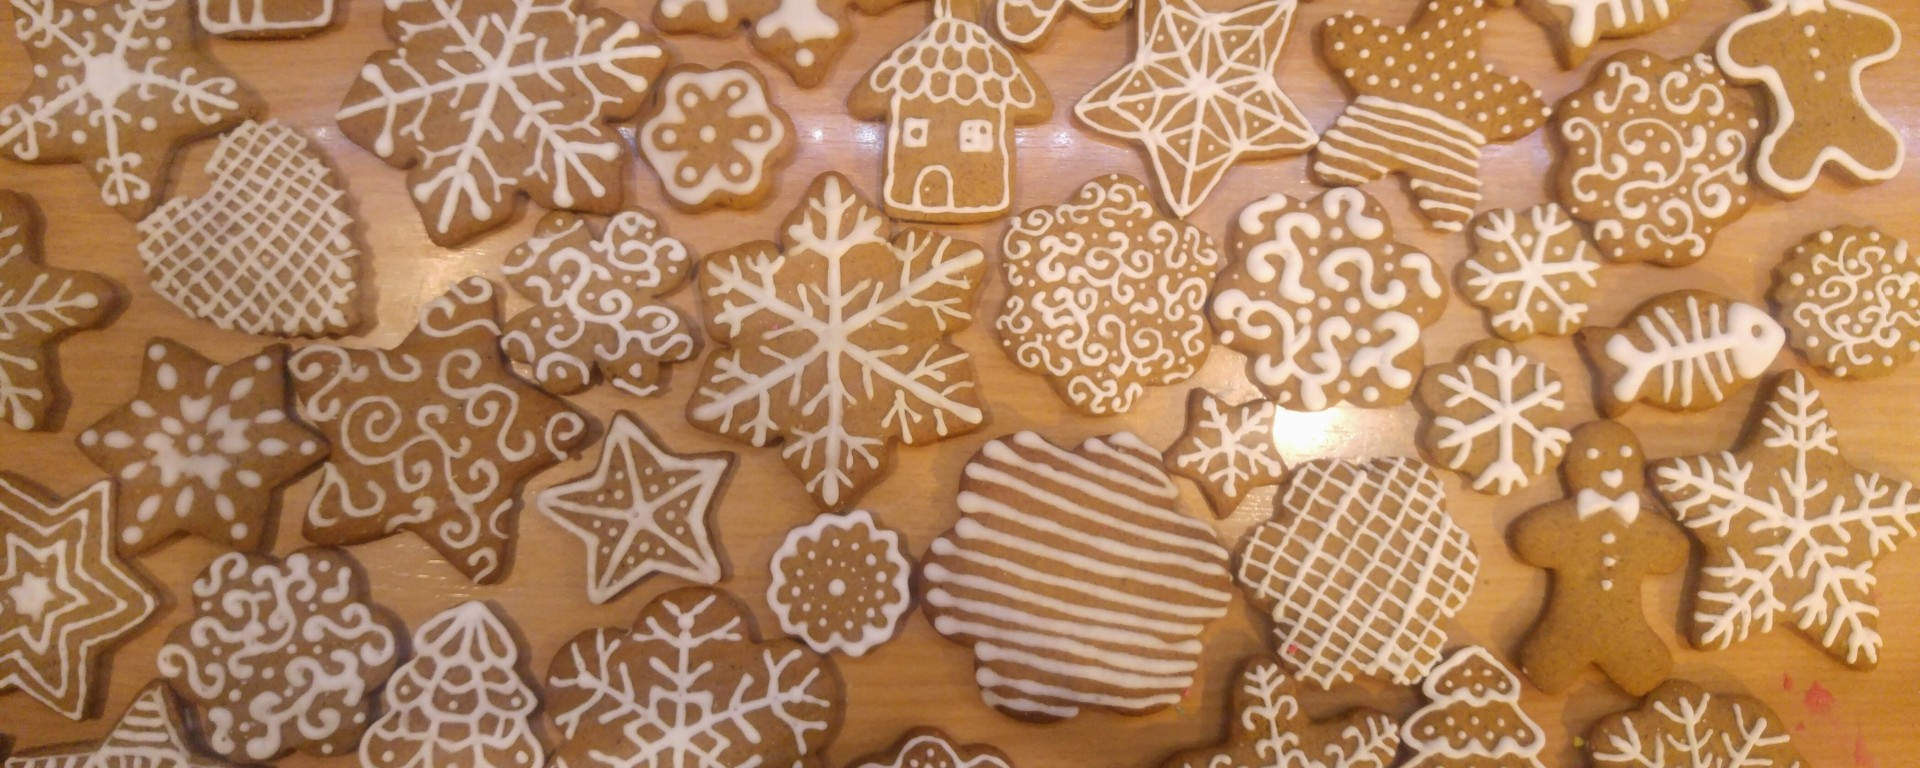 Gingerbread cookies decorated with white royal icing